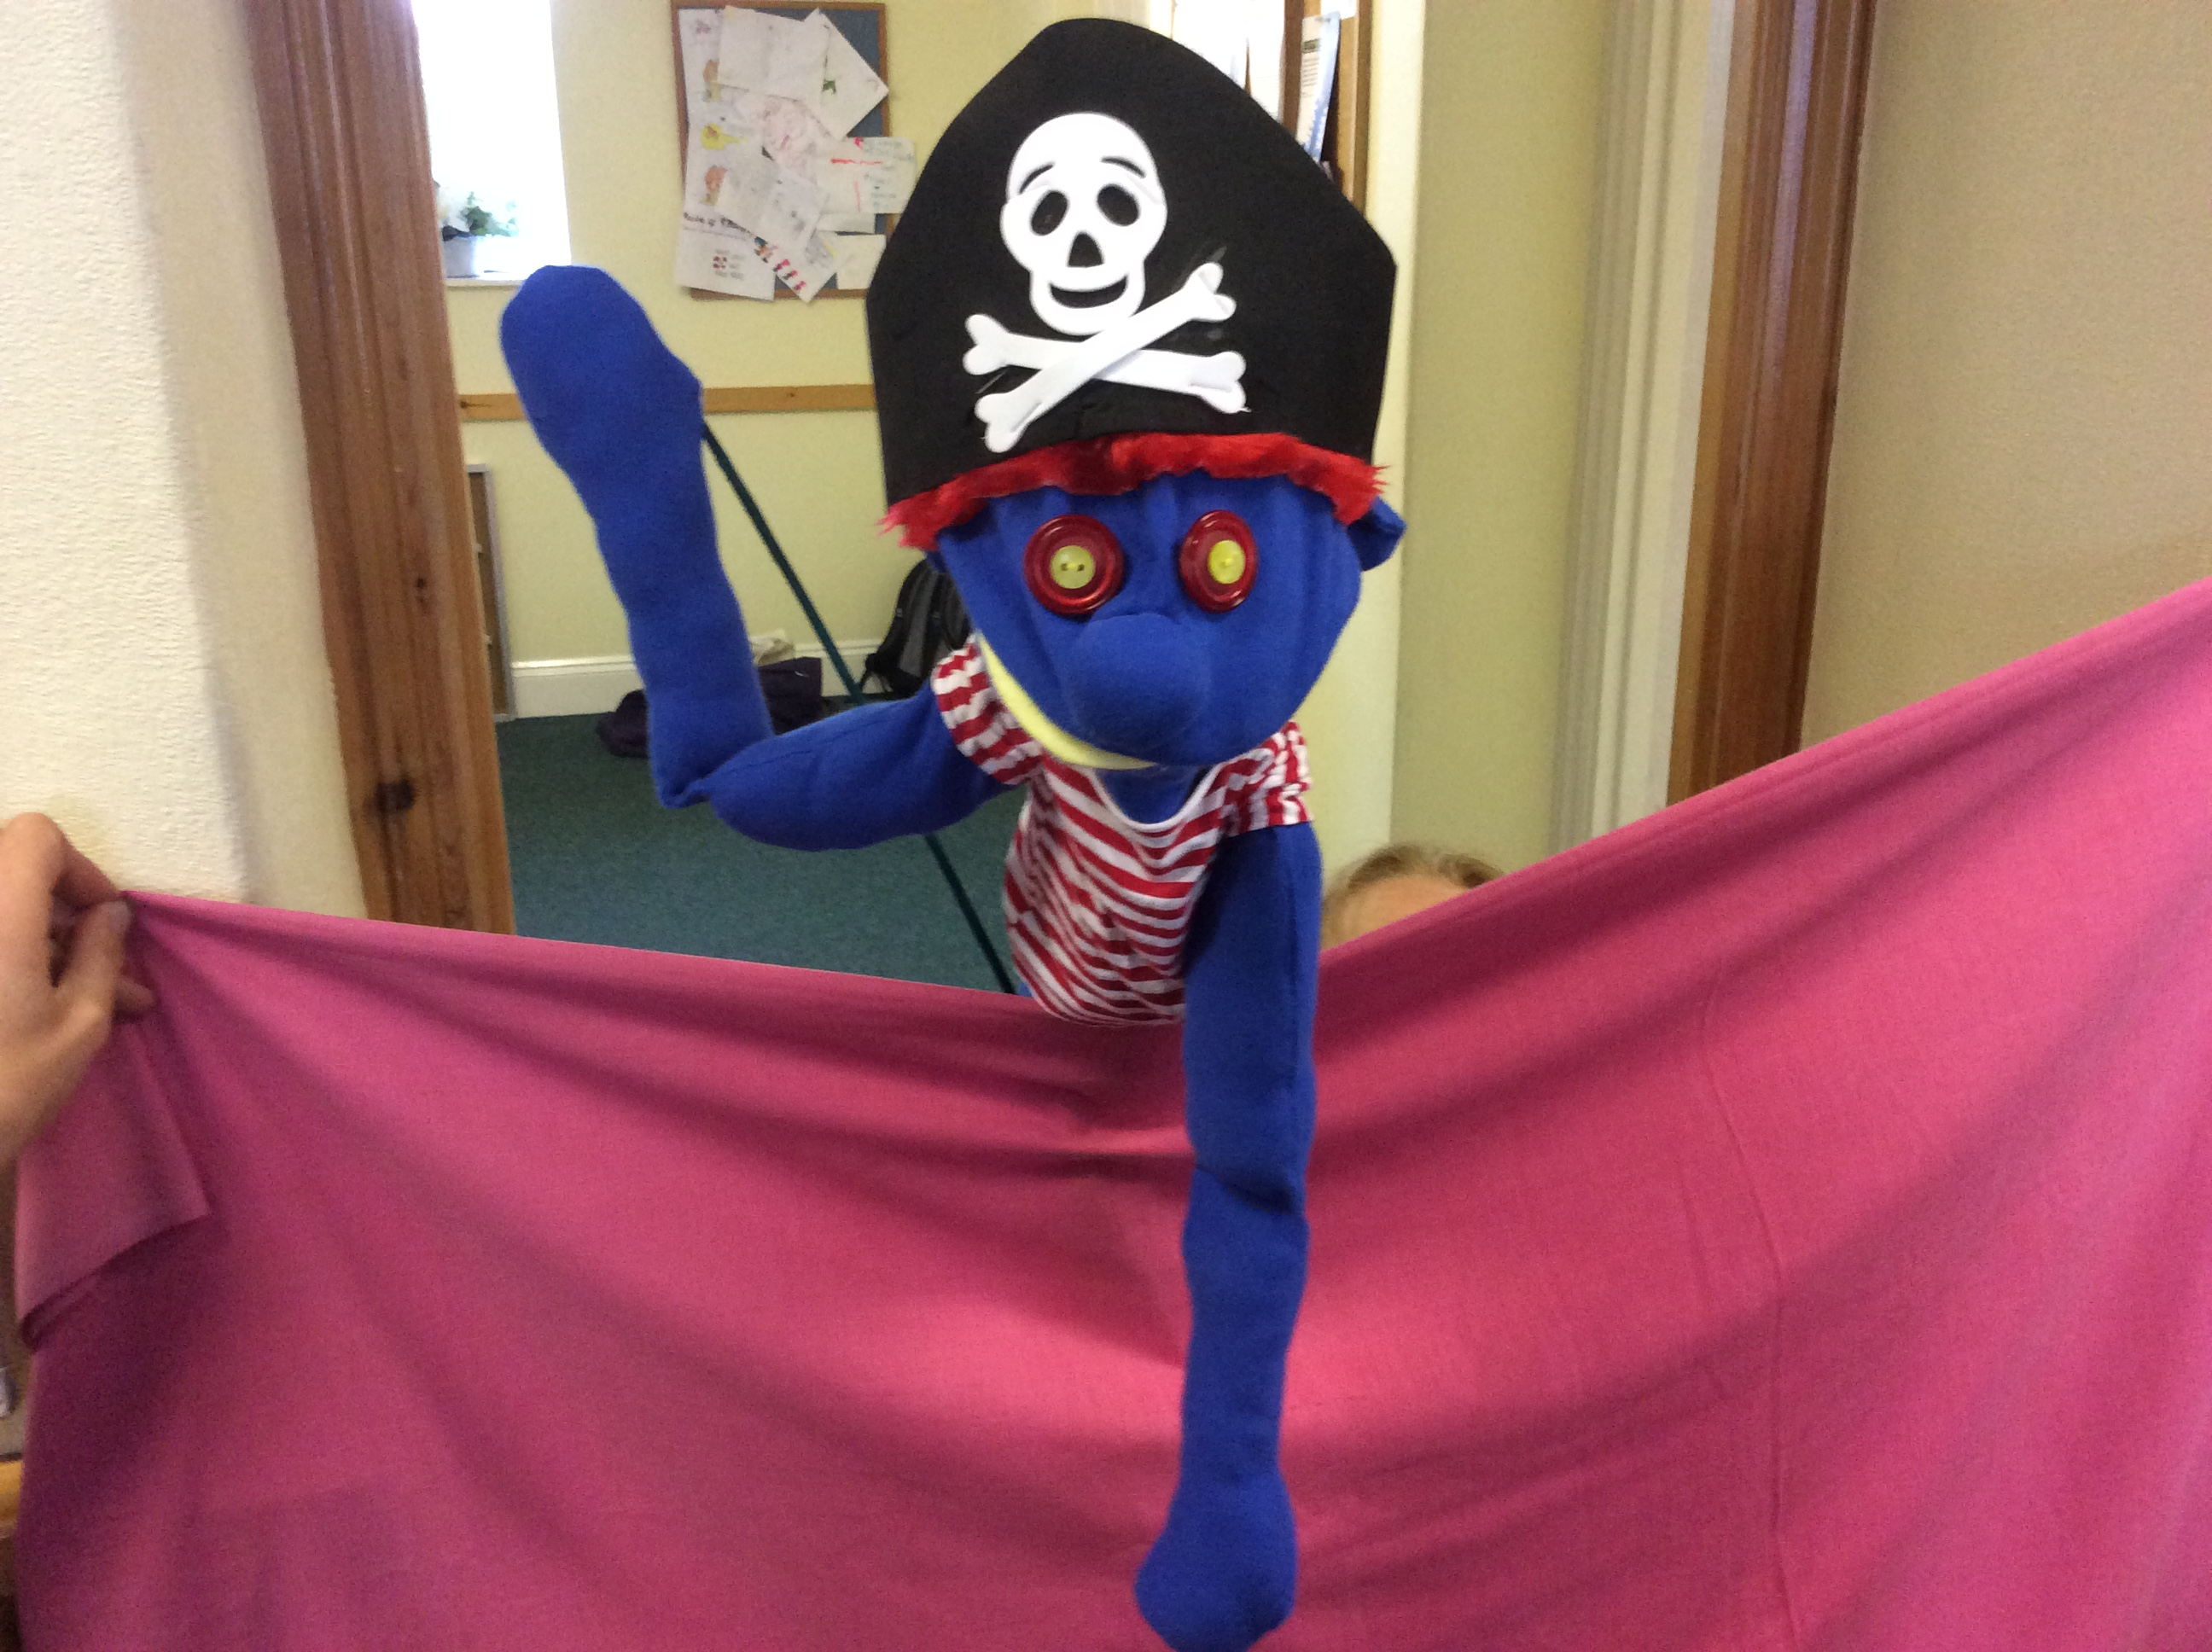 Ooh Aah - Meet Captain Jim!